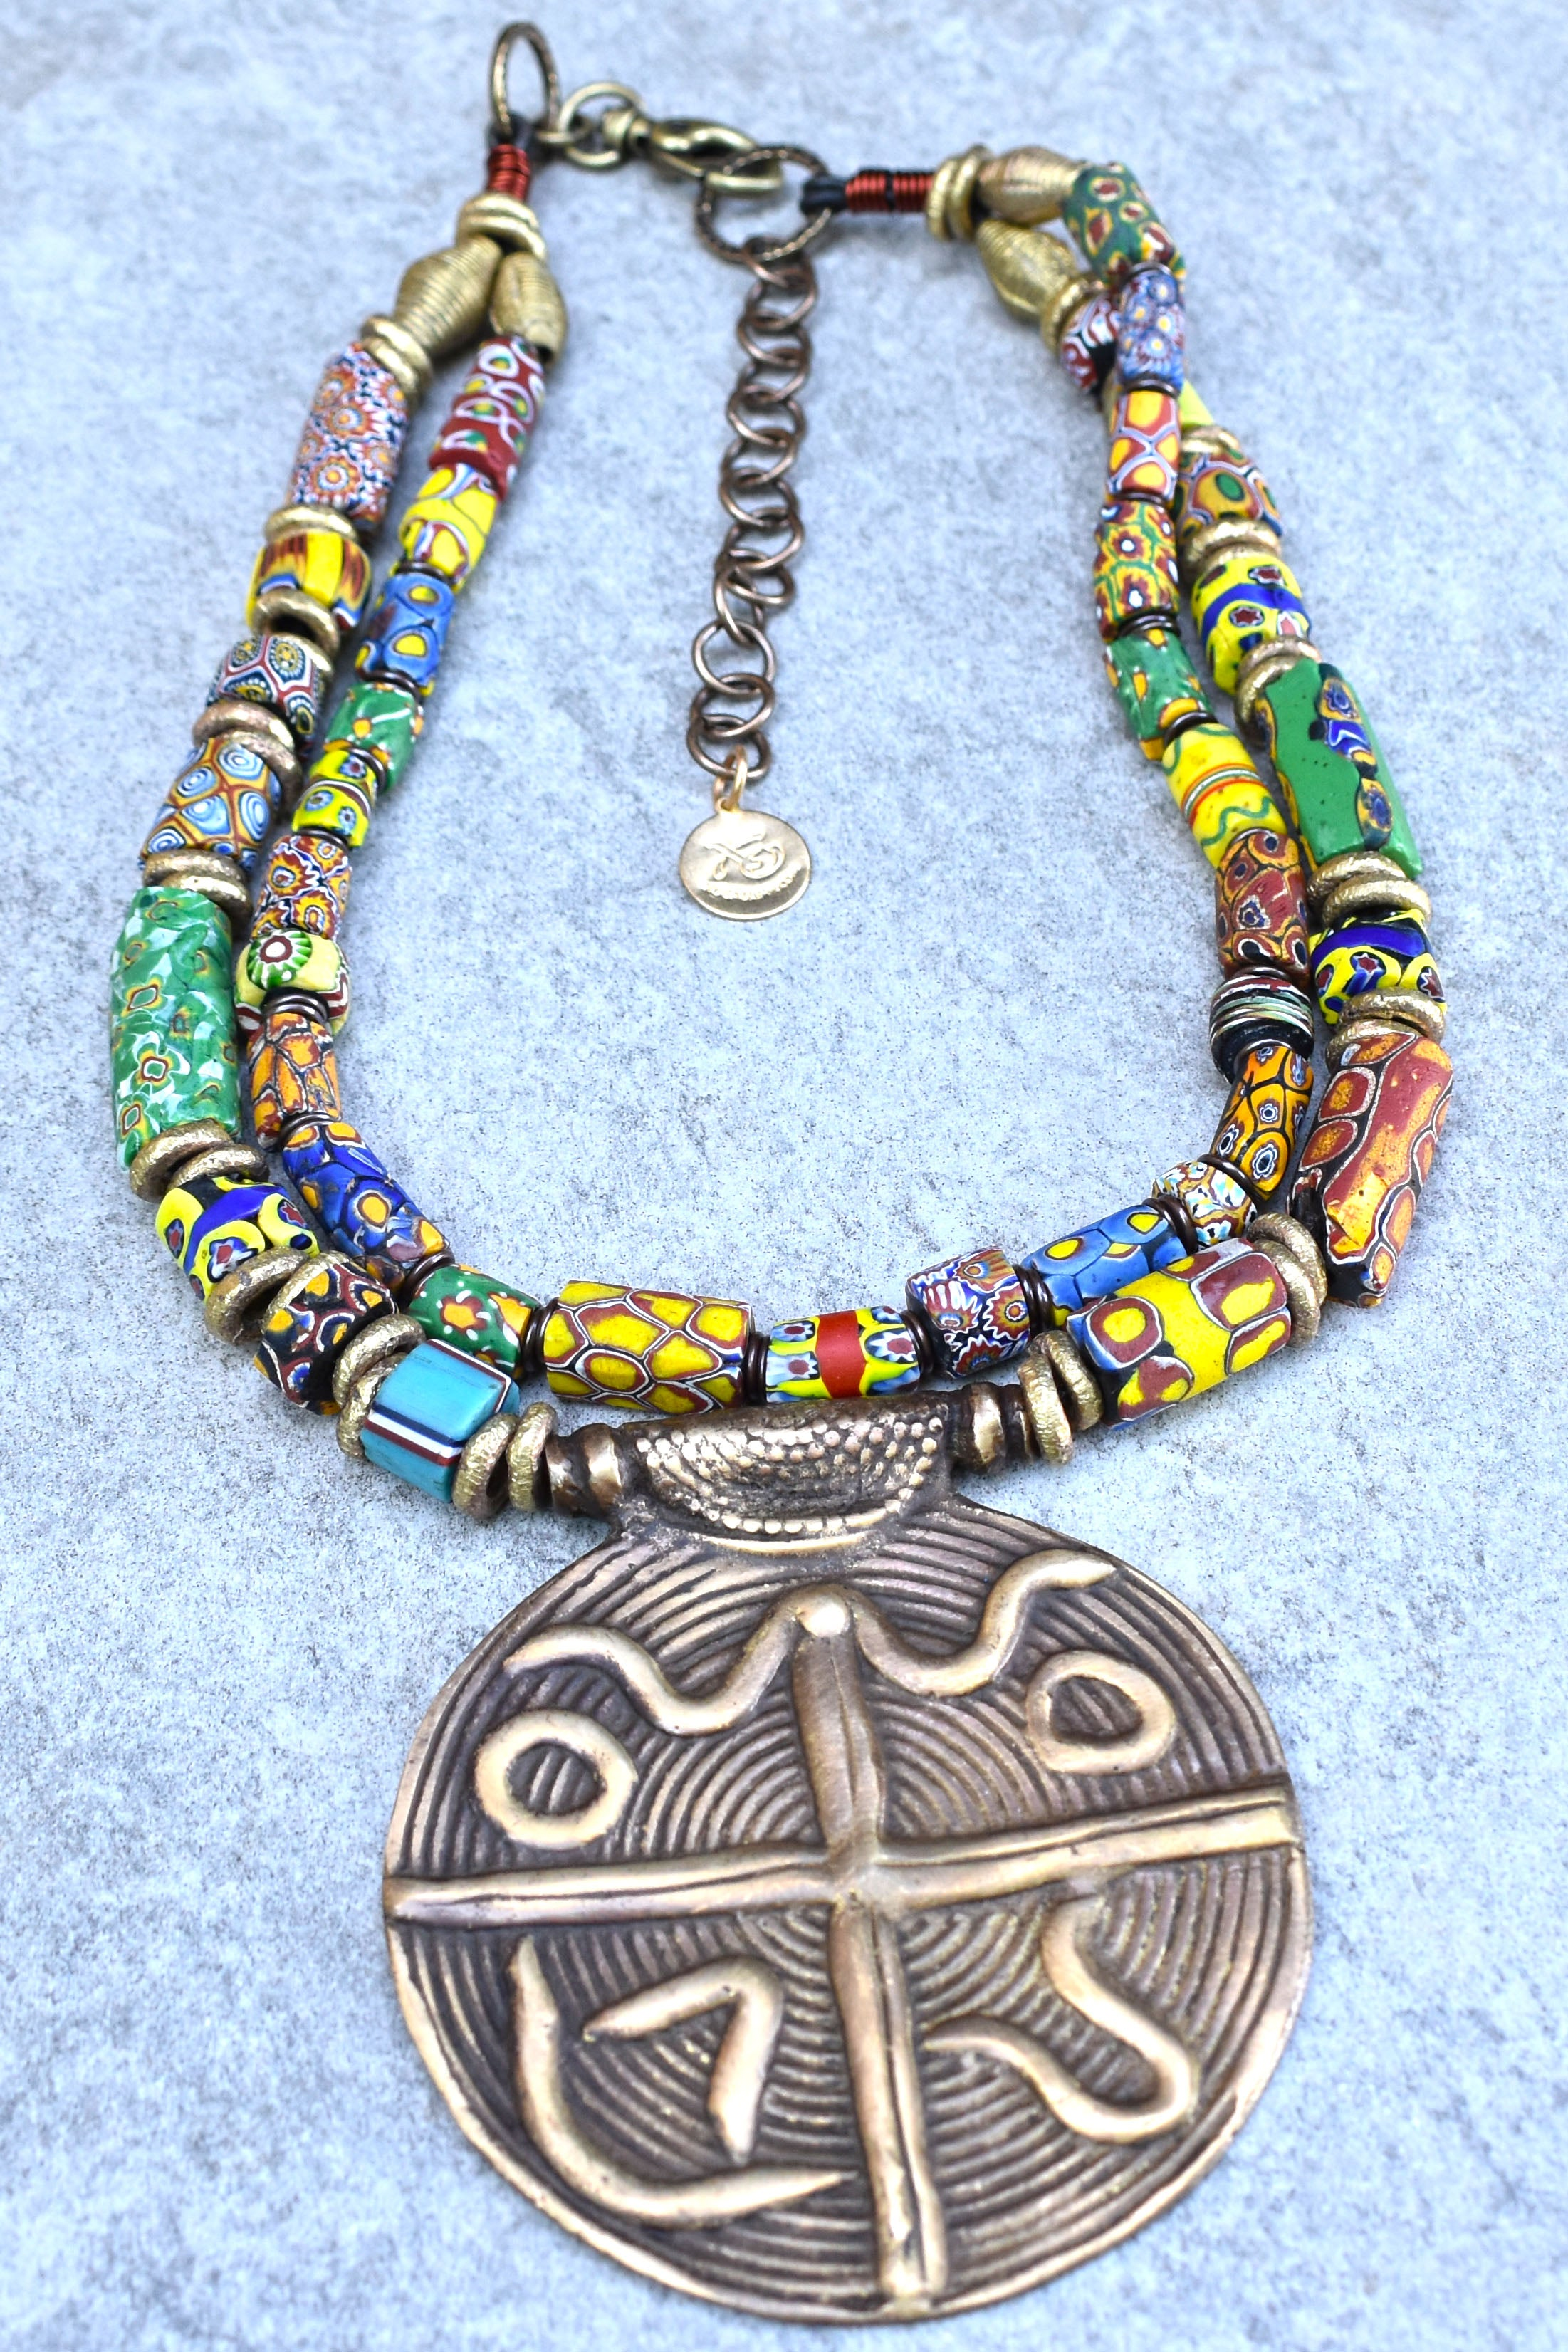 NEW! Ethnic and Exotic African Millefiori Trade Bead and Brass Medallion Pendant Necklace